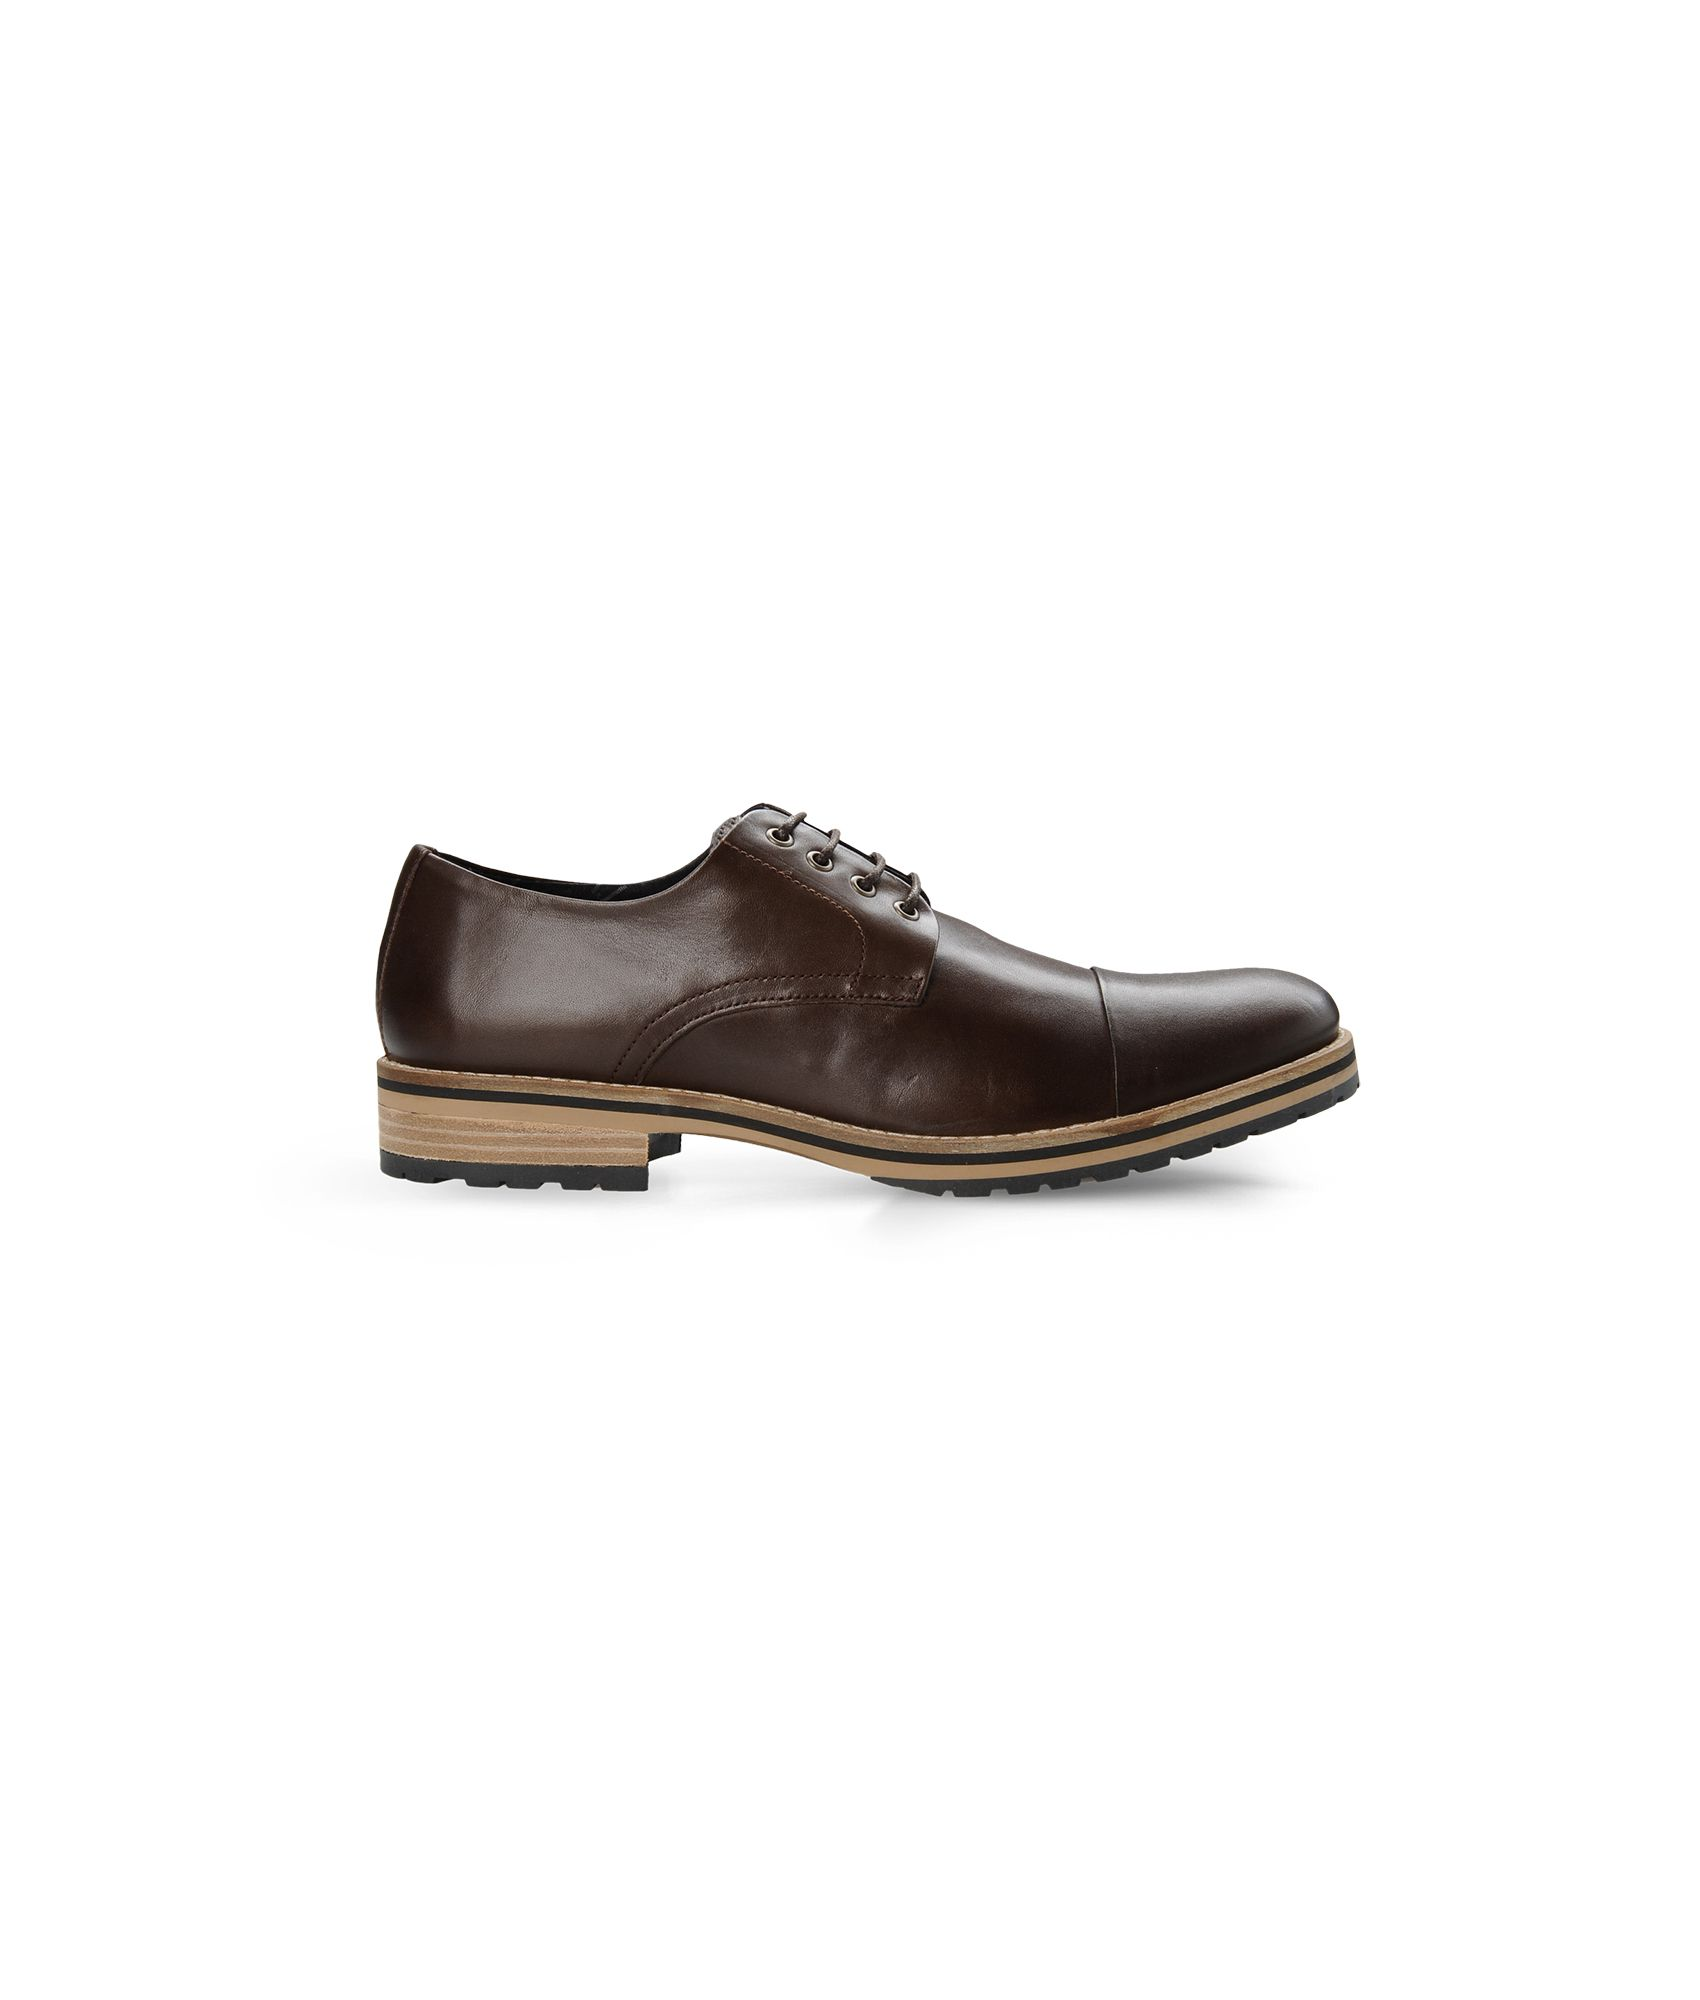 Armani jeans Lace-up Shoe in Black for Men